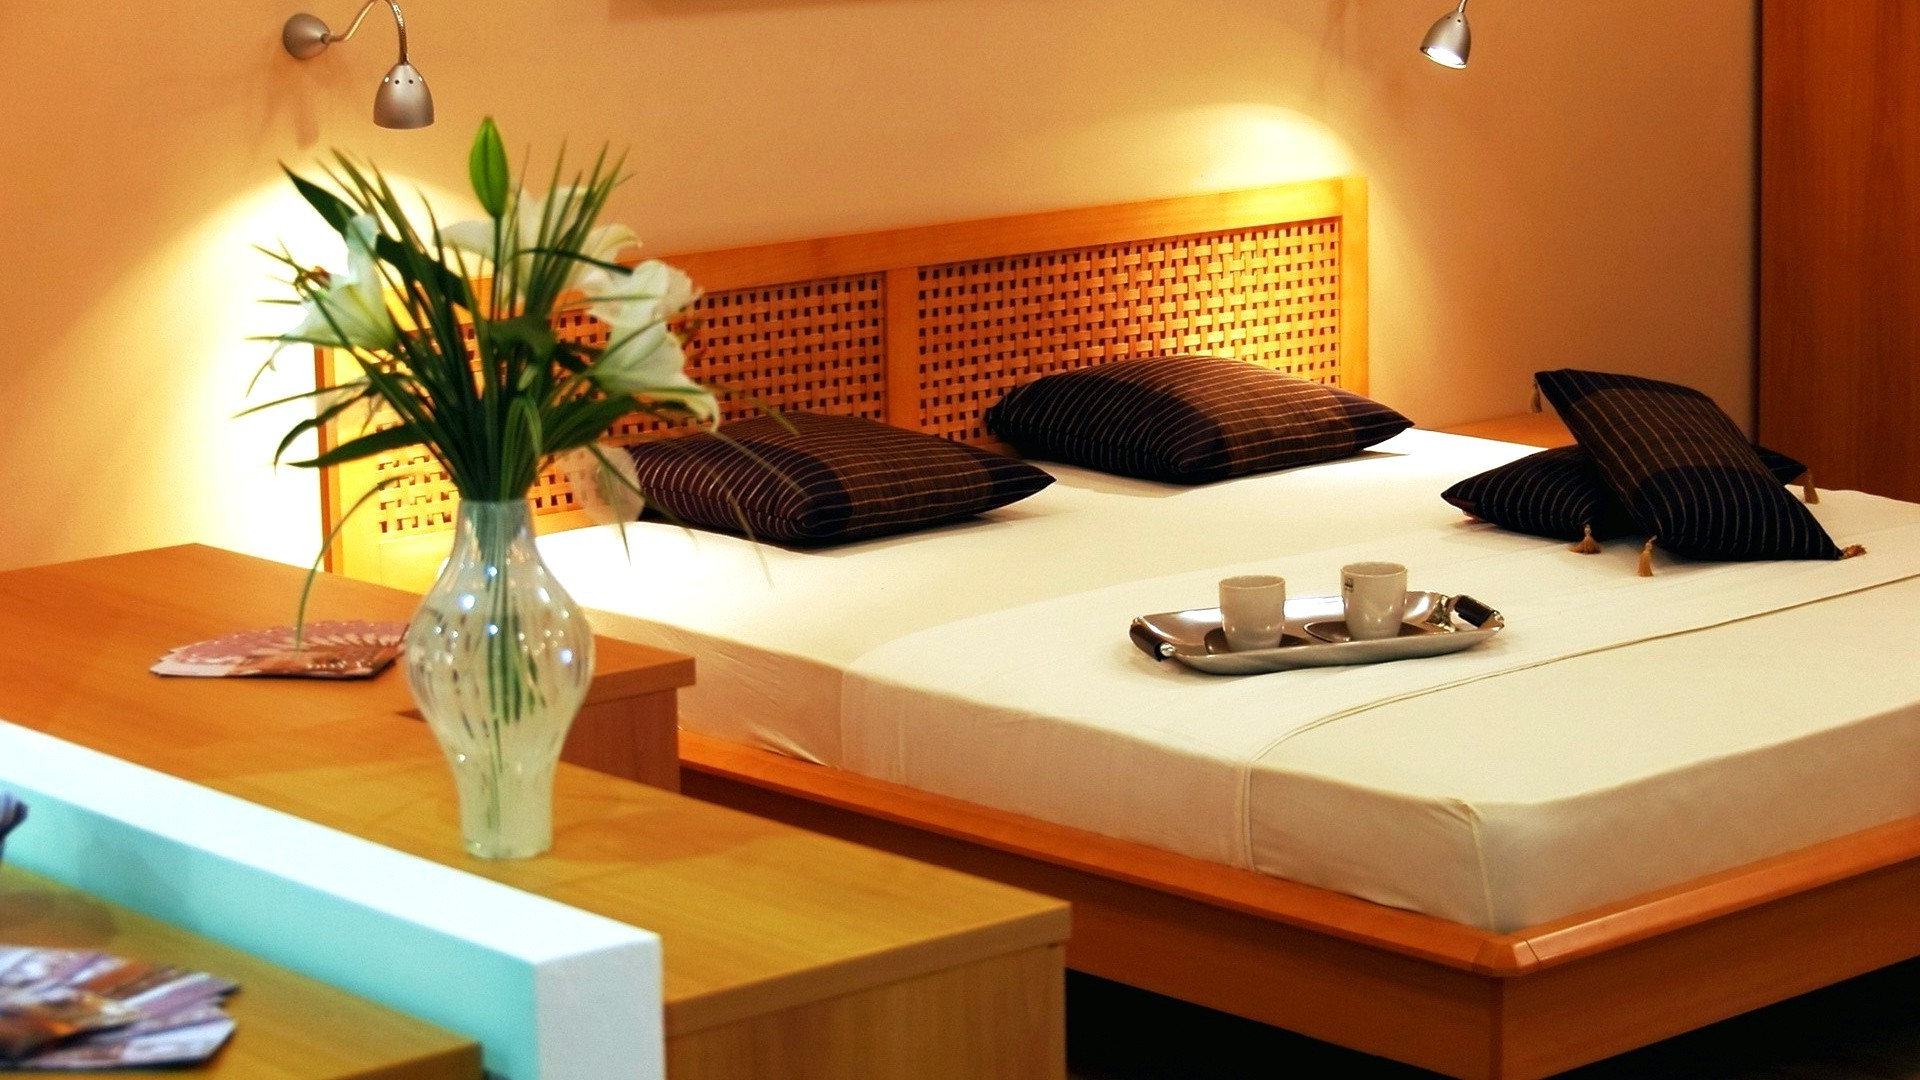 picture: wooden, flowers, brown, lamps, mugs, style, bedroom, design, tray, interior, bed, light, vase, room, orange (image)